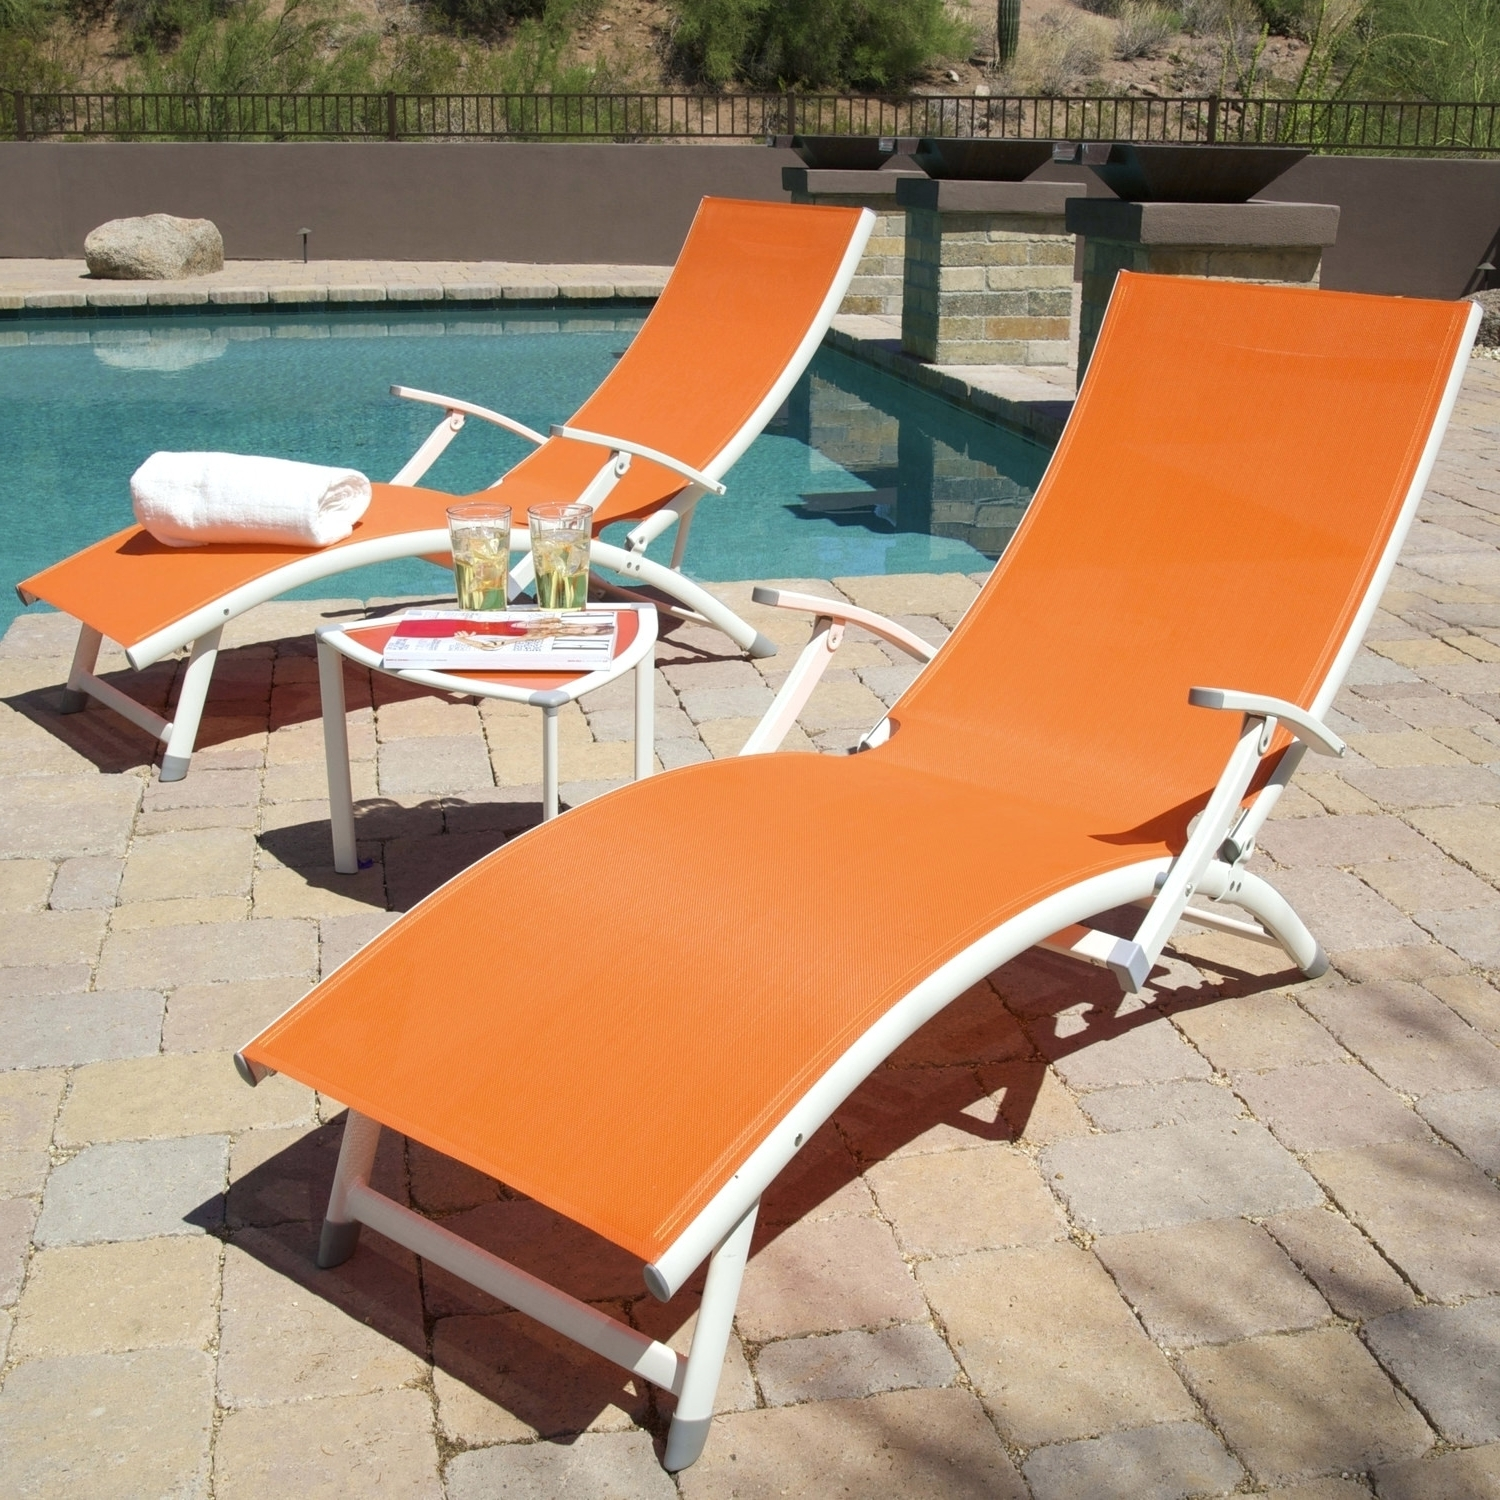 Most Recently Released Image Of Modern Folding Chaise Lounge Chair Pvc Outdoor Chaise Pertaining To Pvc Outdoor Chaise Lounge Chairs (View 4 of 15)